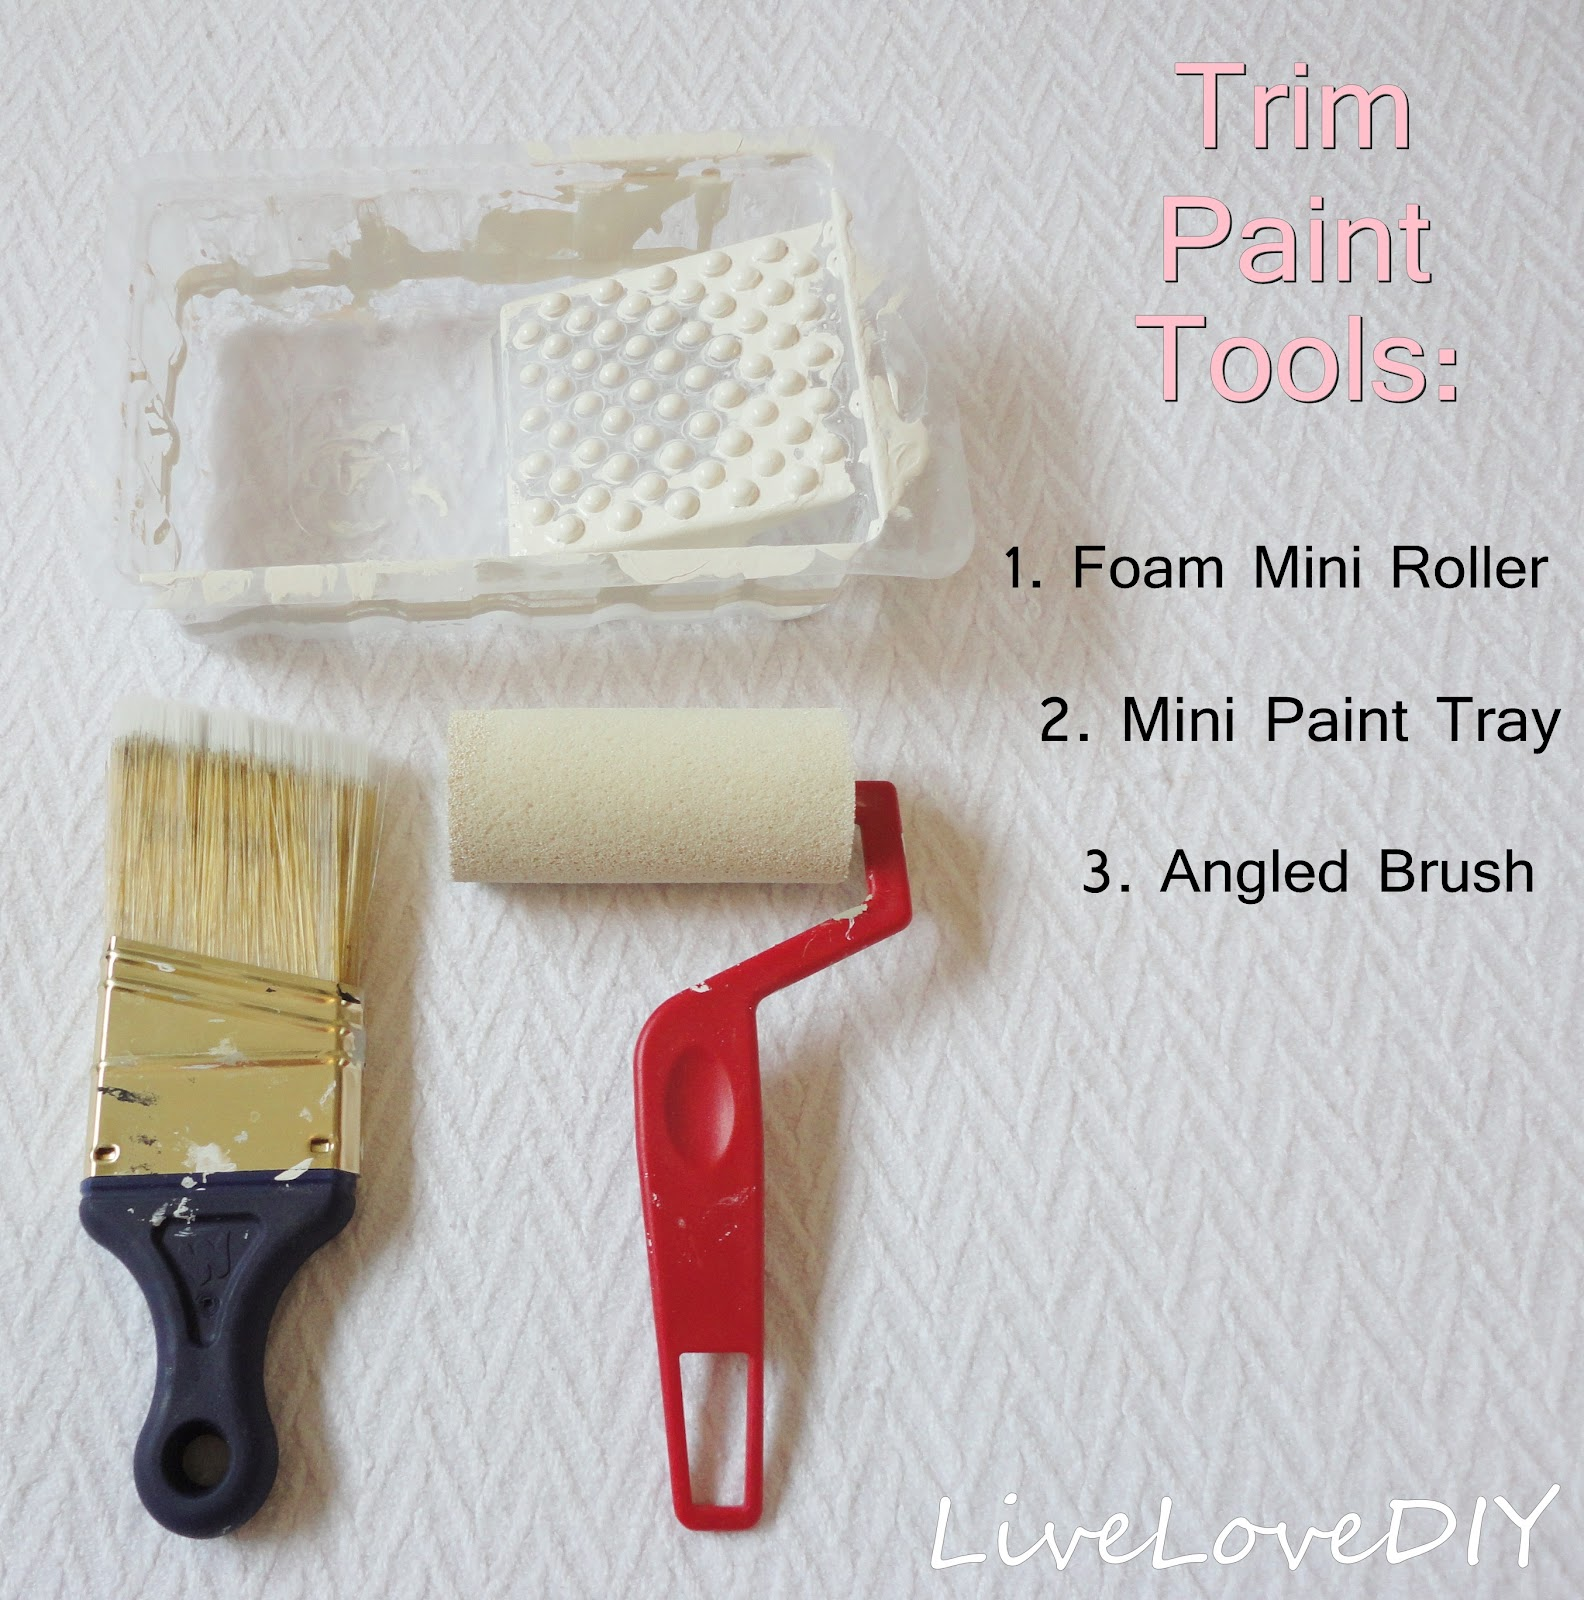 LiveLoveDIY: How To Paint Trim